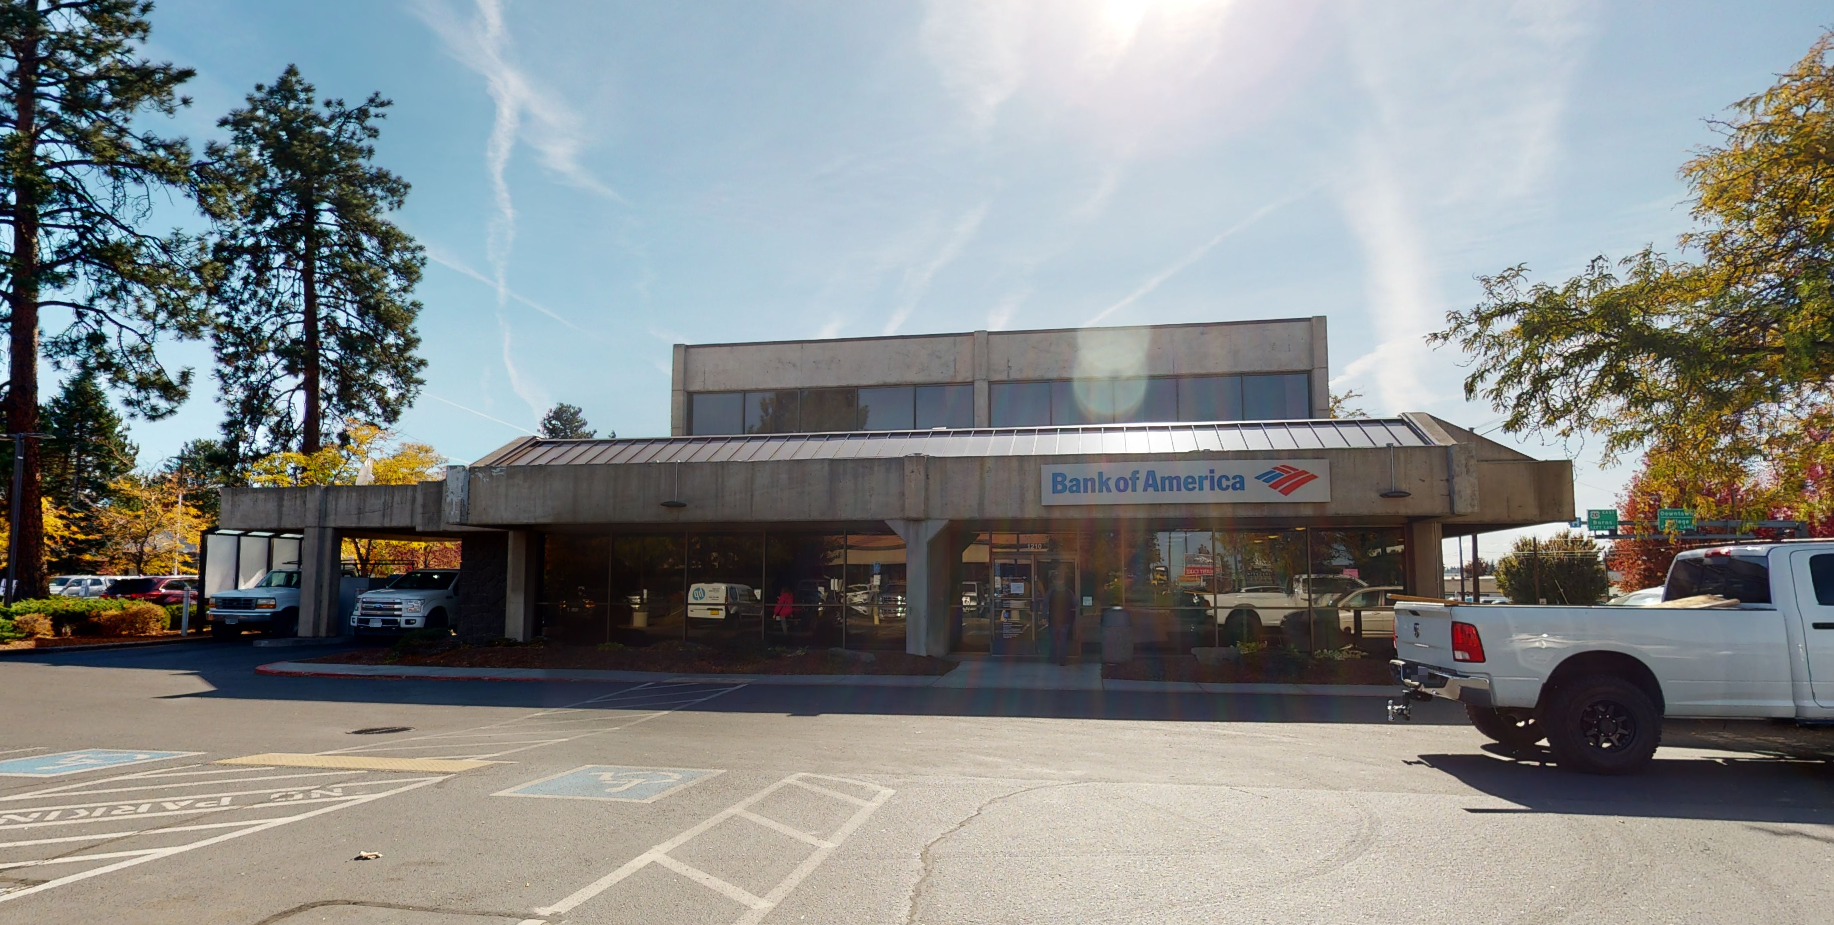 Bank of America financial center with drive-thru ATM and teller | 1210 NE 3rd St, Bend, OR 97701